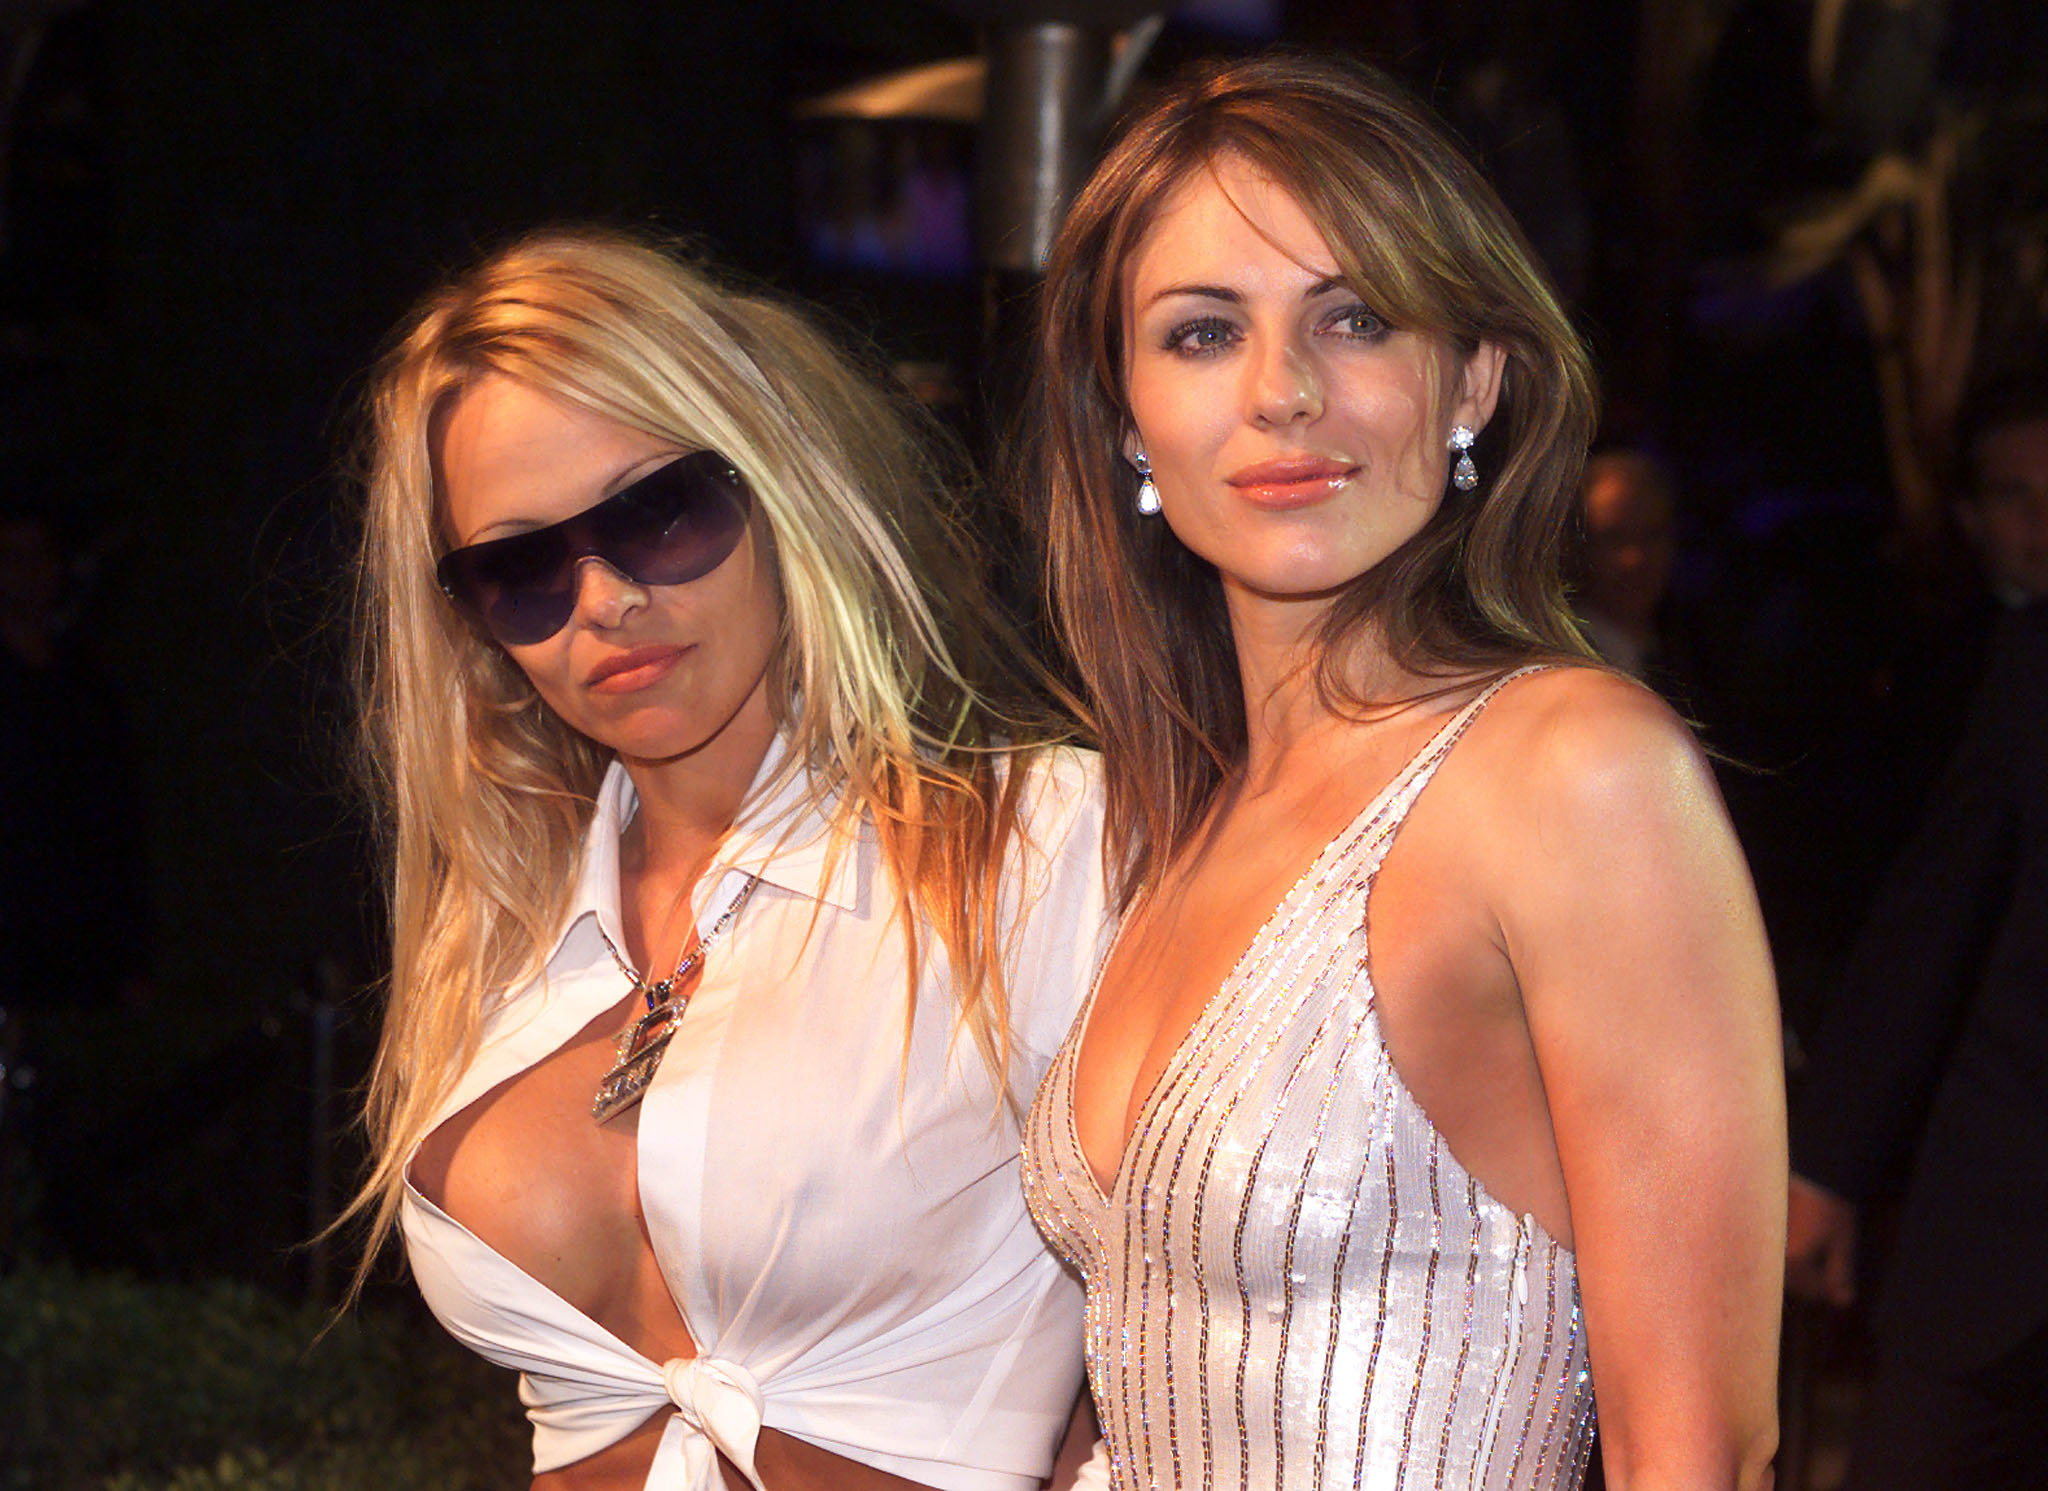 Actresses Pamela Anderson (L) and Elizabeth Hurley pose together as they arrive at the Vanity Fair post-Academy Awards party at Mortons in Los Angeles, March 25, 2001.